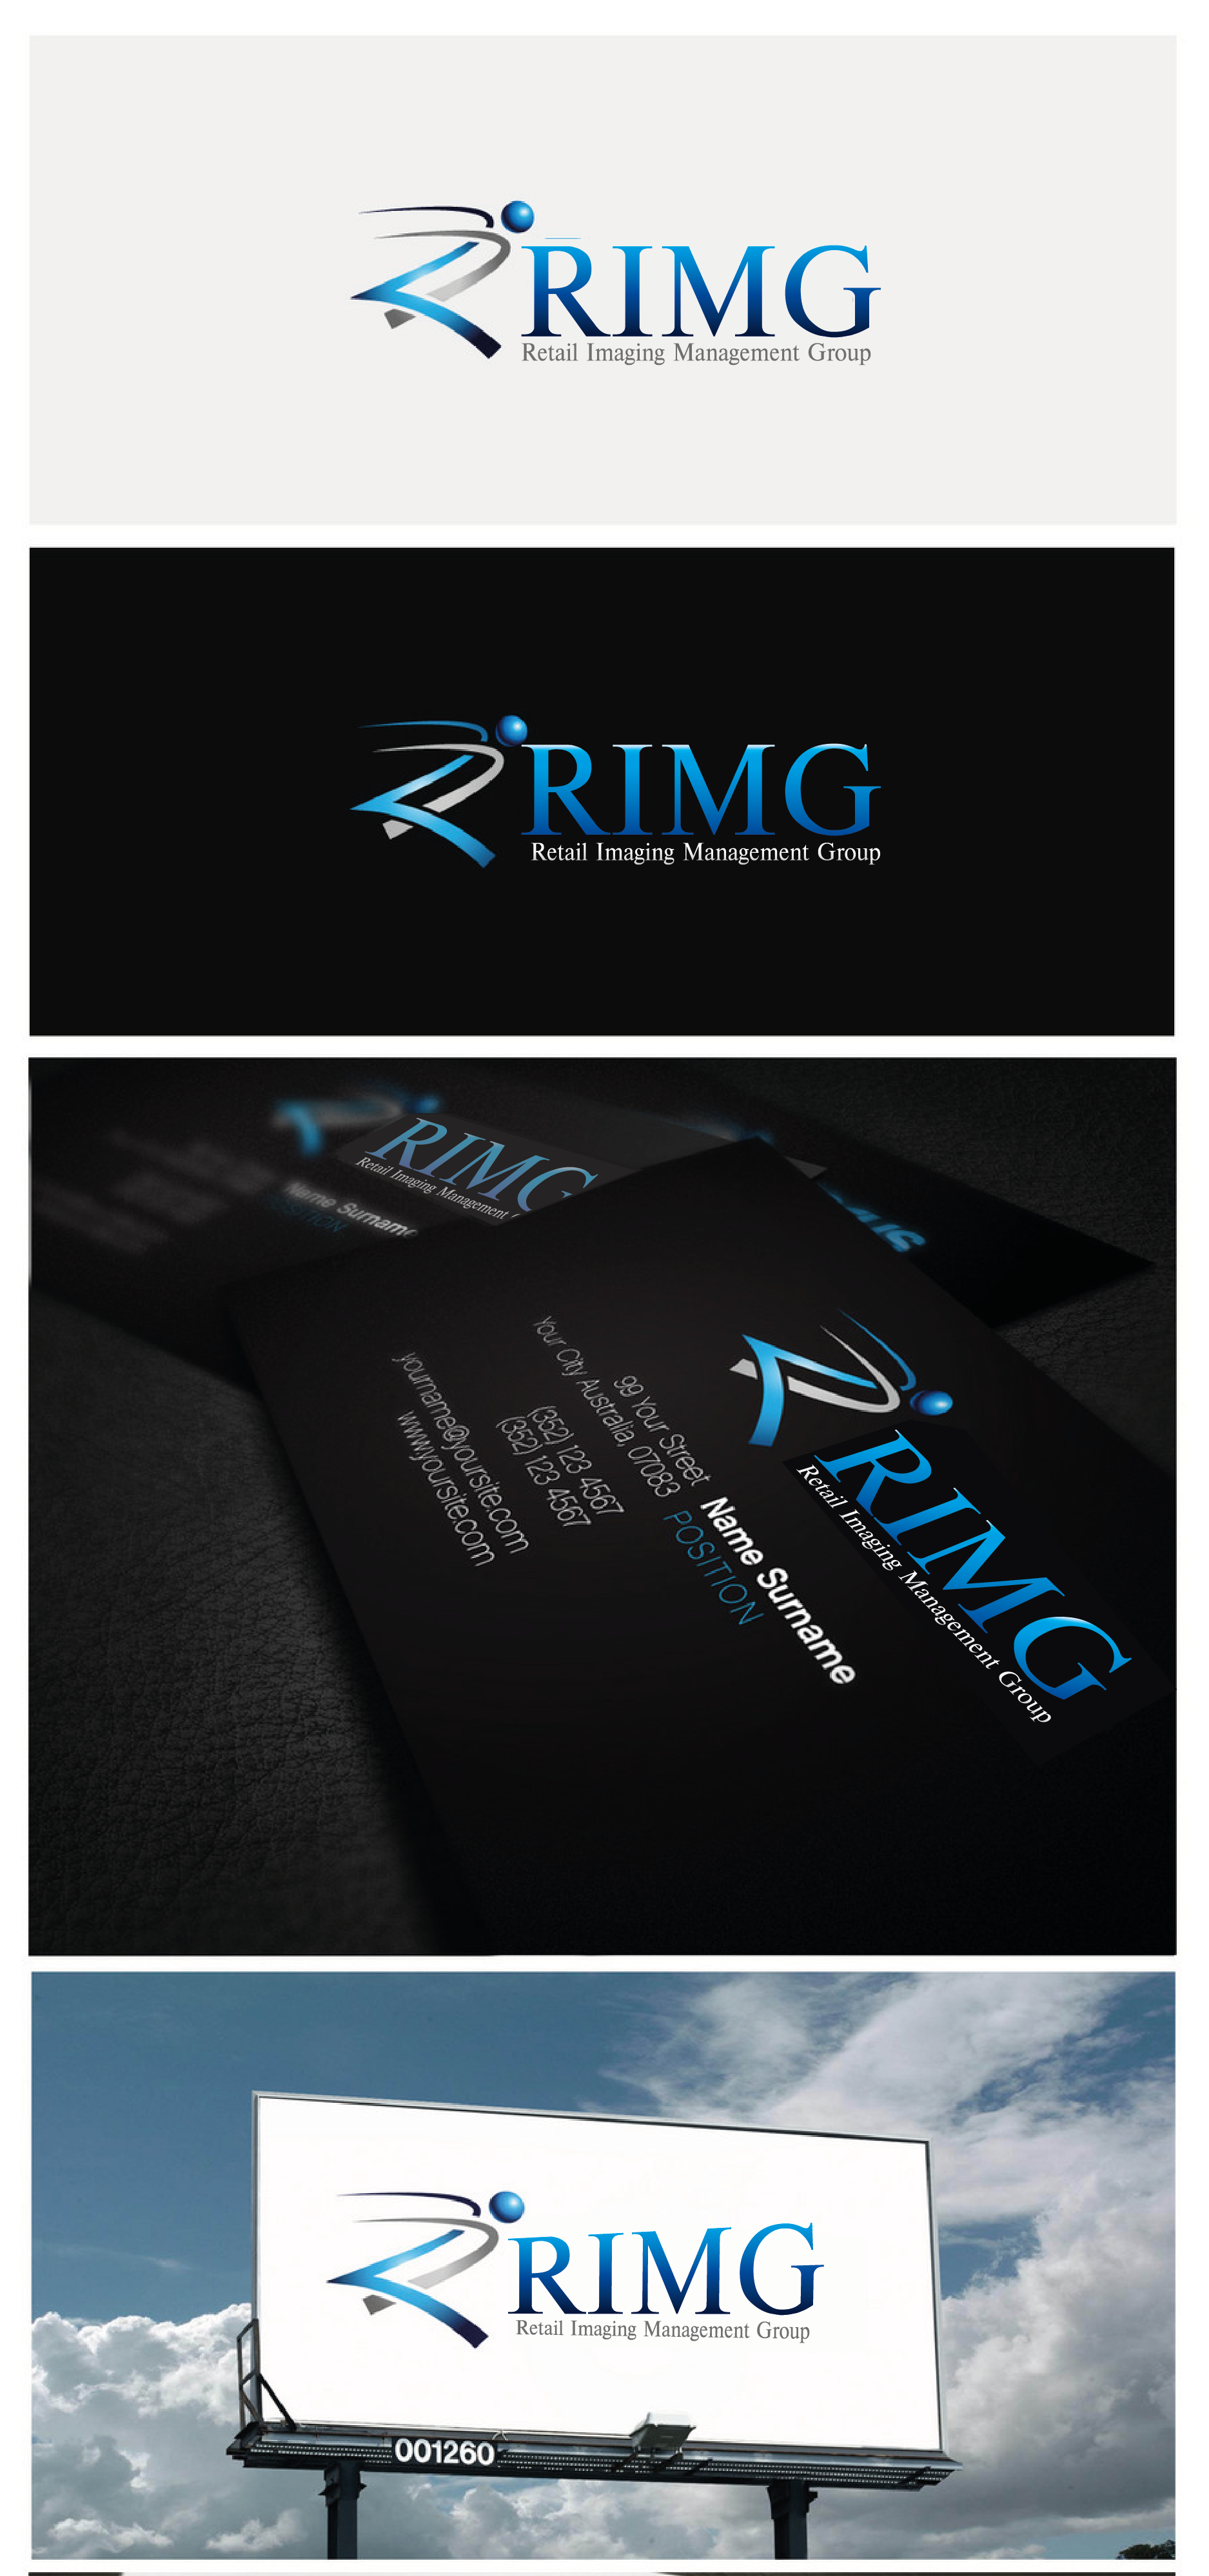 Logo Design by Private User - Entry No. 100 in the Logo Design Contest Creative Logo Design for Retail Imaging Management Group (R.I.M.G.).